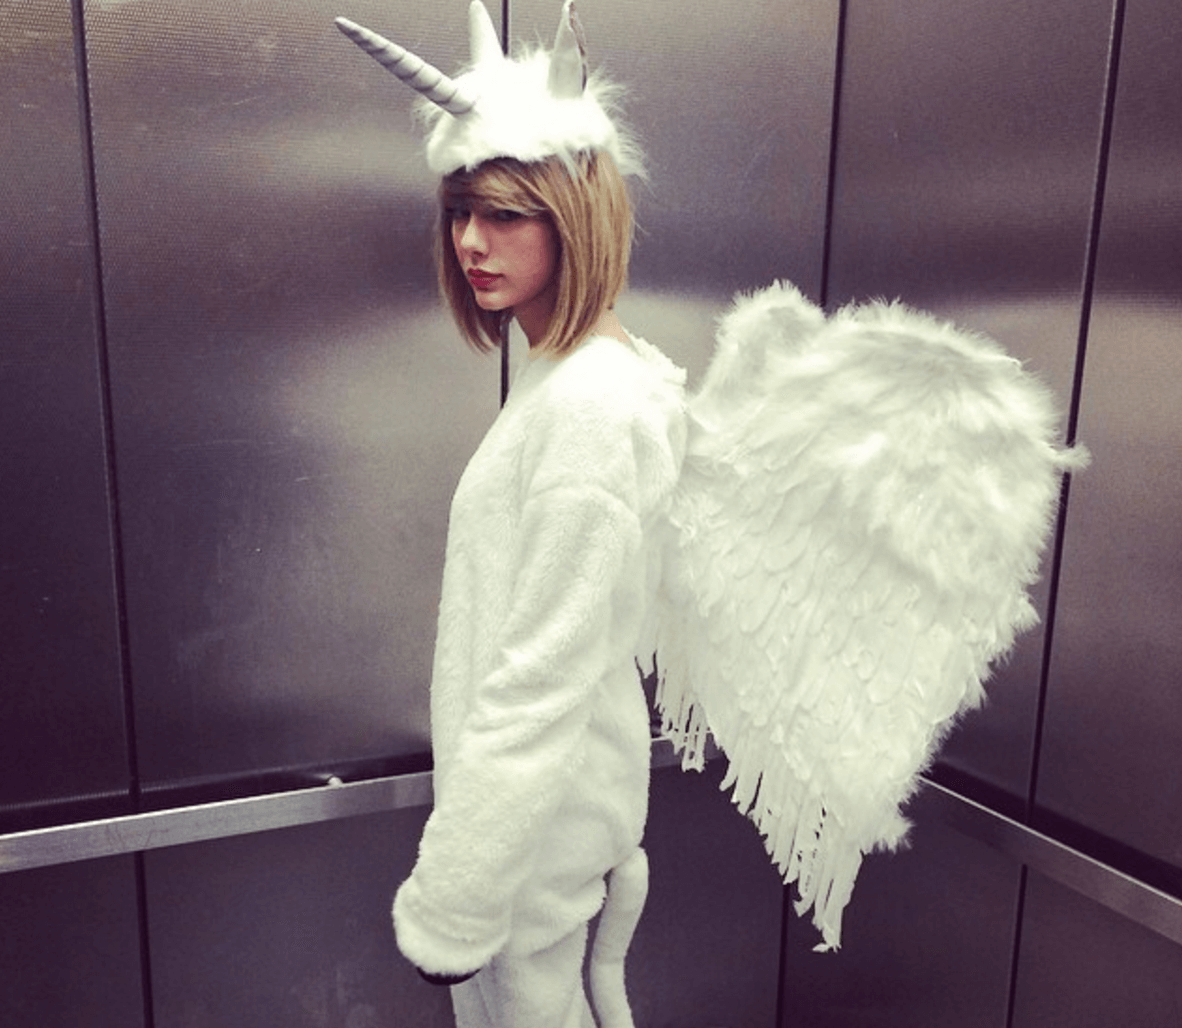 taylor swift's instagram perfectly sums up the job search